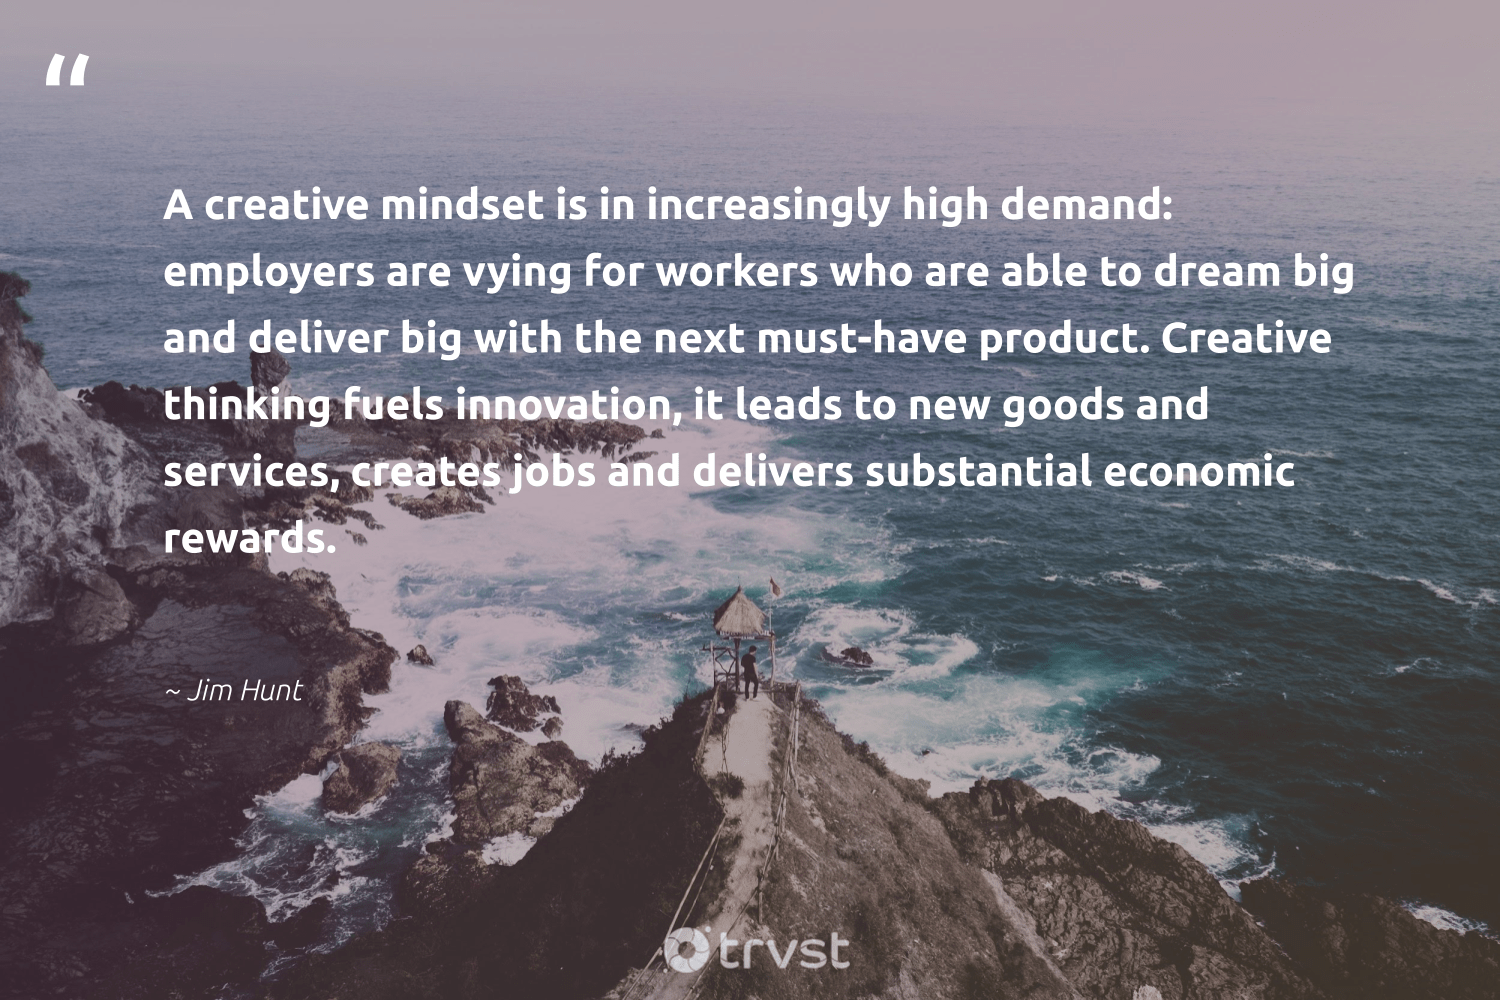 """A creative mindset is in increasingly high demand: employers are vying for workers who are able to dream big and deliver big with the next must-have product. Creative thinking fuels innovation, it leads to new goods and services, creates jobs and delivers substantial economic rewards.""  - Jim Hunt #trvst #quotes #mindset #creativemindset #creative #growthmindset #goals #begreat #nevergiveup #dotherightthing #mindfulness #positivity"